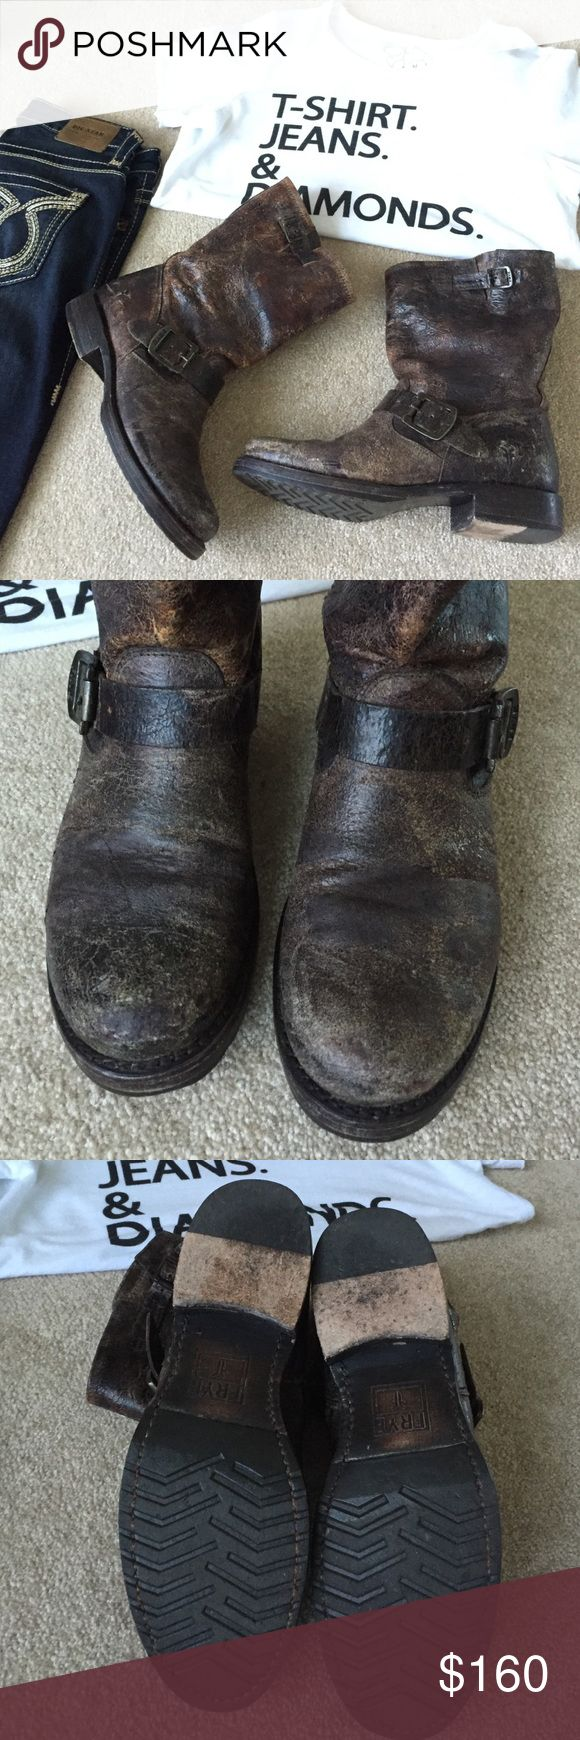 Frye Veronica Slouch short boot Frye Veronica Slouch short boot. Distressed leather, EUC. Women's size 8 this is a no trade closet, lowball offers will be ignored/declined Frye Shoes Combat & Moto Boots